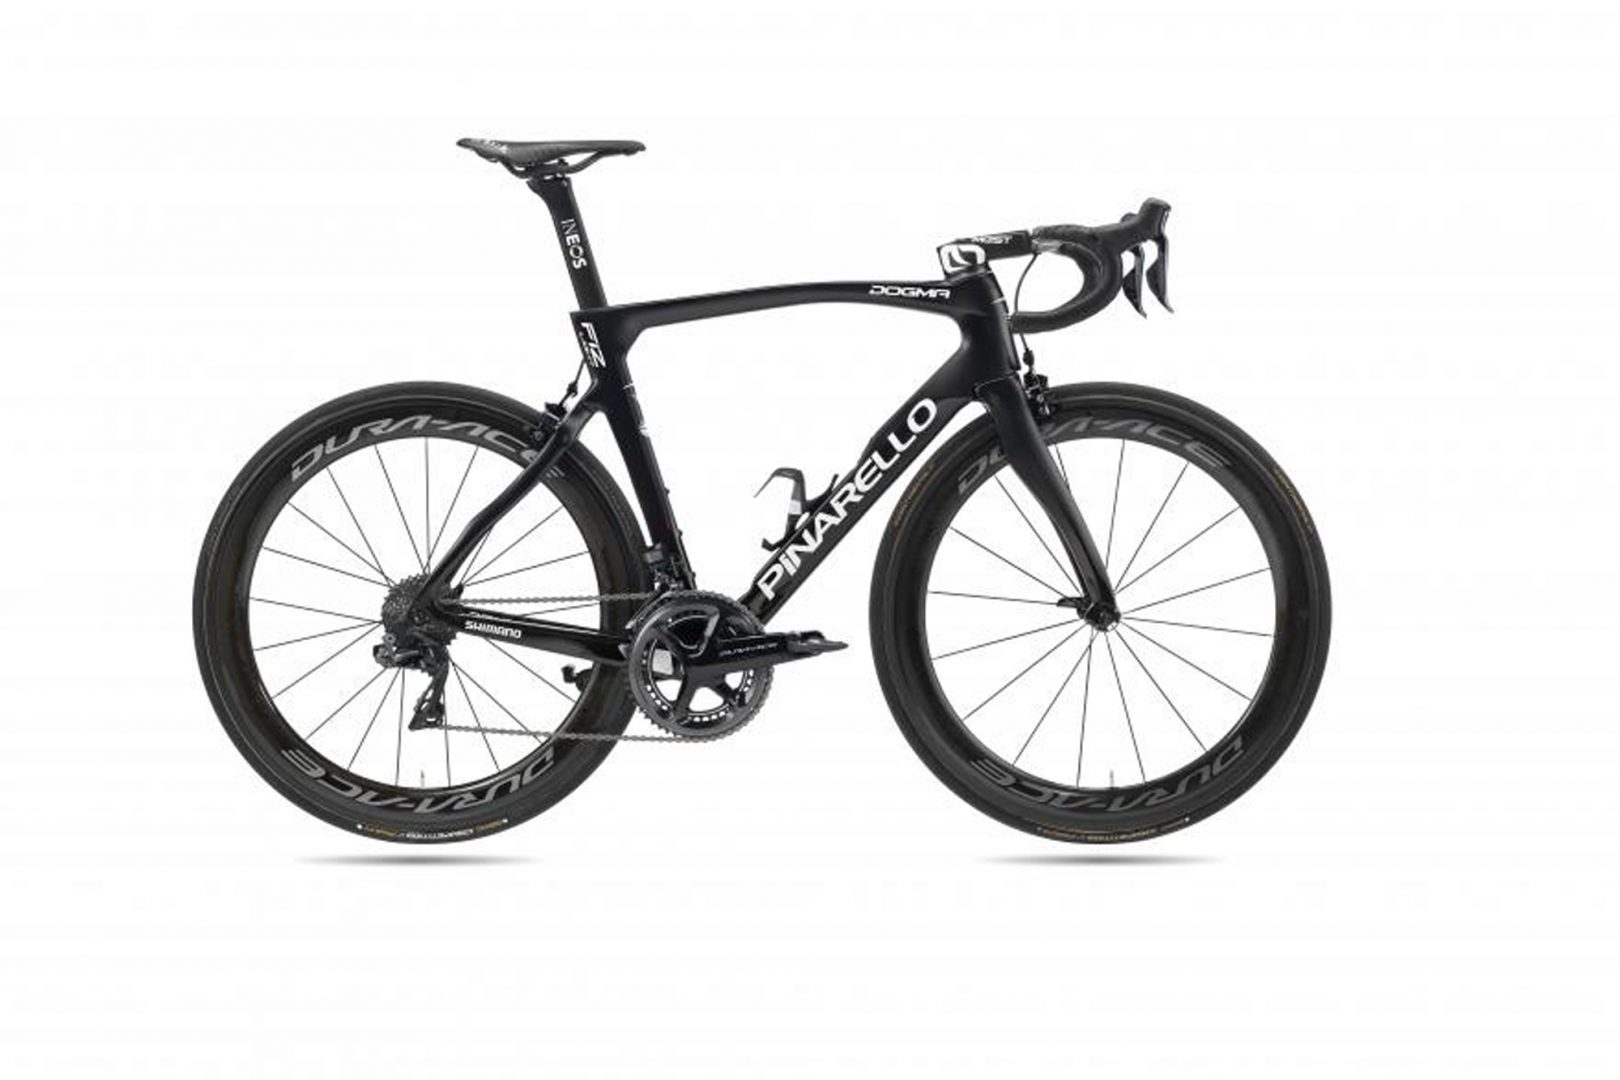 https://www.cyclingweekly.com/news/product-news/pinarello-launch-new-dogma-f12-x-light-frame-6200-price-tag-427047